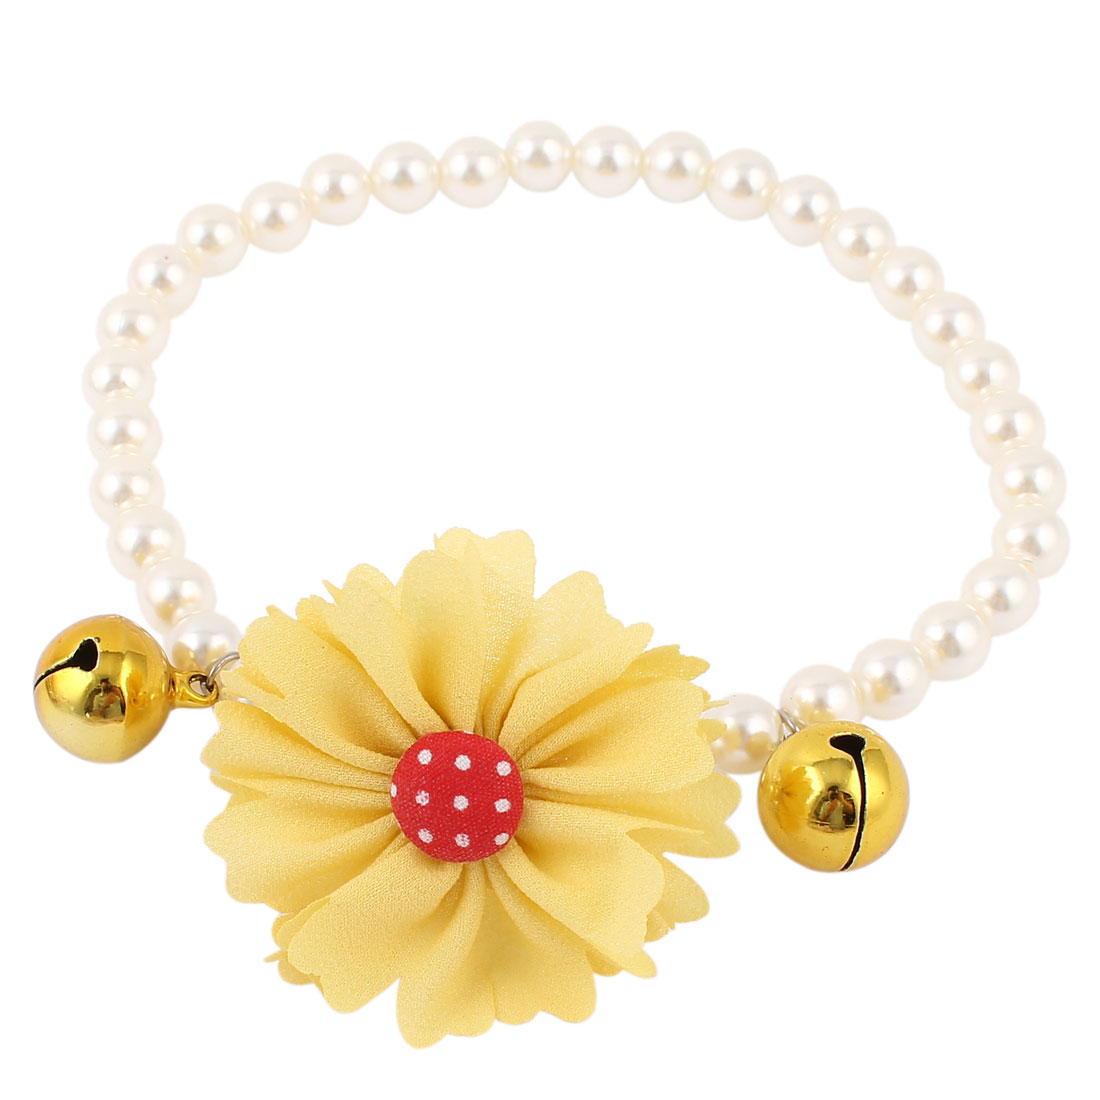 Metal Bell Pendant Flower Accent Pet Dog Plastic Beads Pearls Collar Necklace White Yellow L